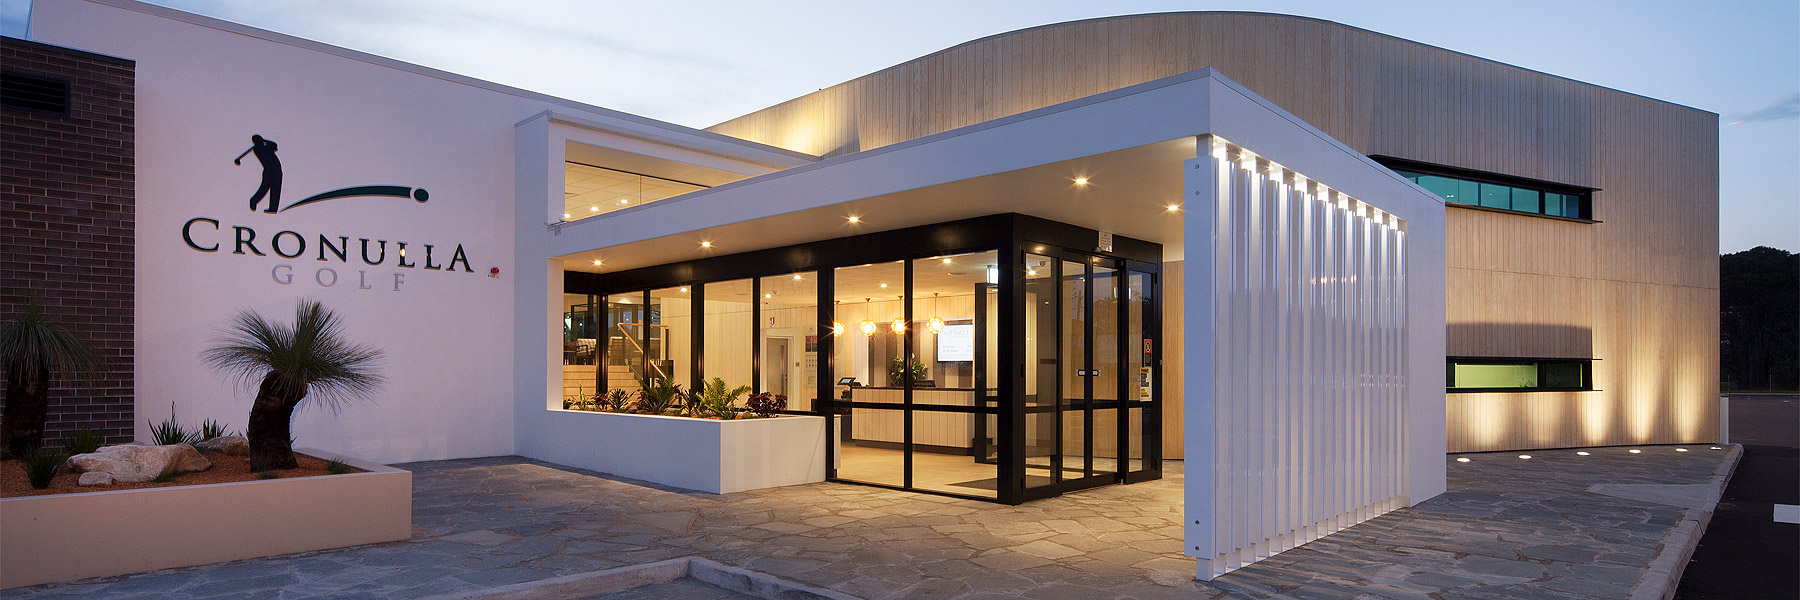 Cronulla Golf Club designed by Abeo Architects including new entry, foyer and reception, new bars and lounges, new restaurant called The Greenery, new functions, new kitchen and stores, new loading dock, new toilets, new gaming and alfresco gaming, new TAB, new cashier, new administration and new furniture